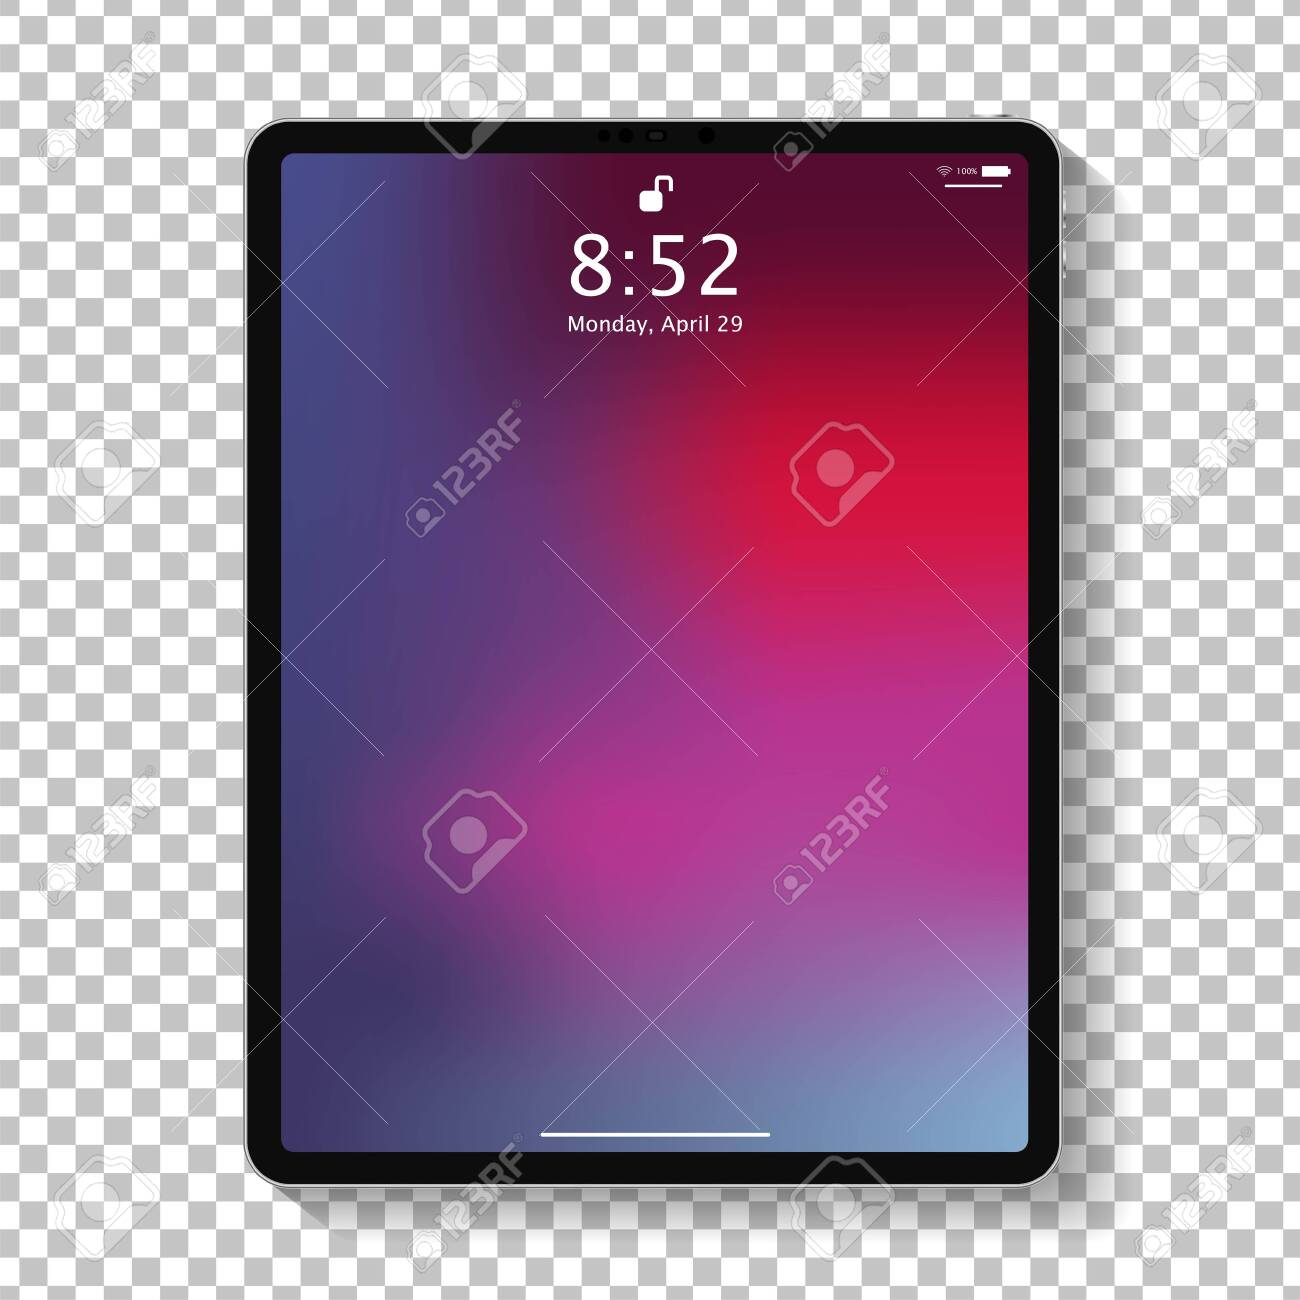 Realistic tablet computer lock screen with abstract colored geometric wallpaper. Big and small modern tablet PC design isolated on transparent background. Vector Illustration - 122923812